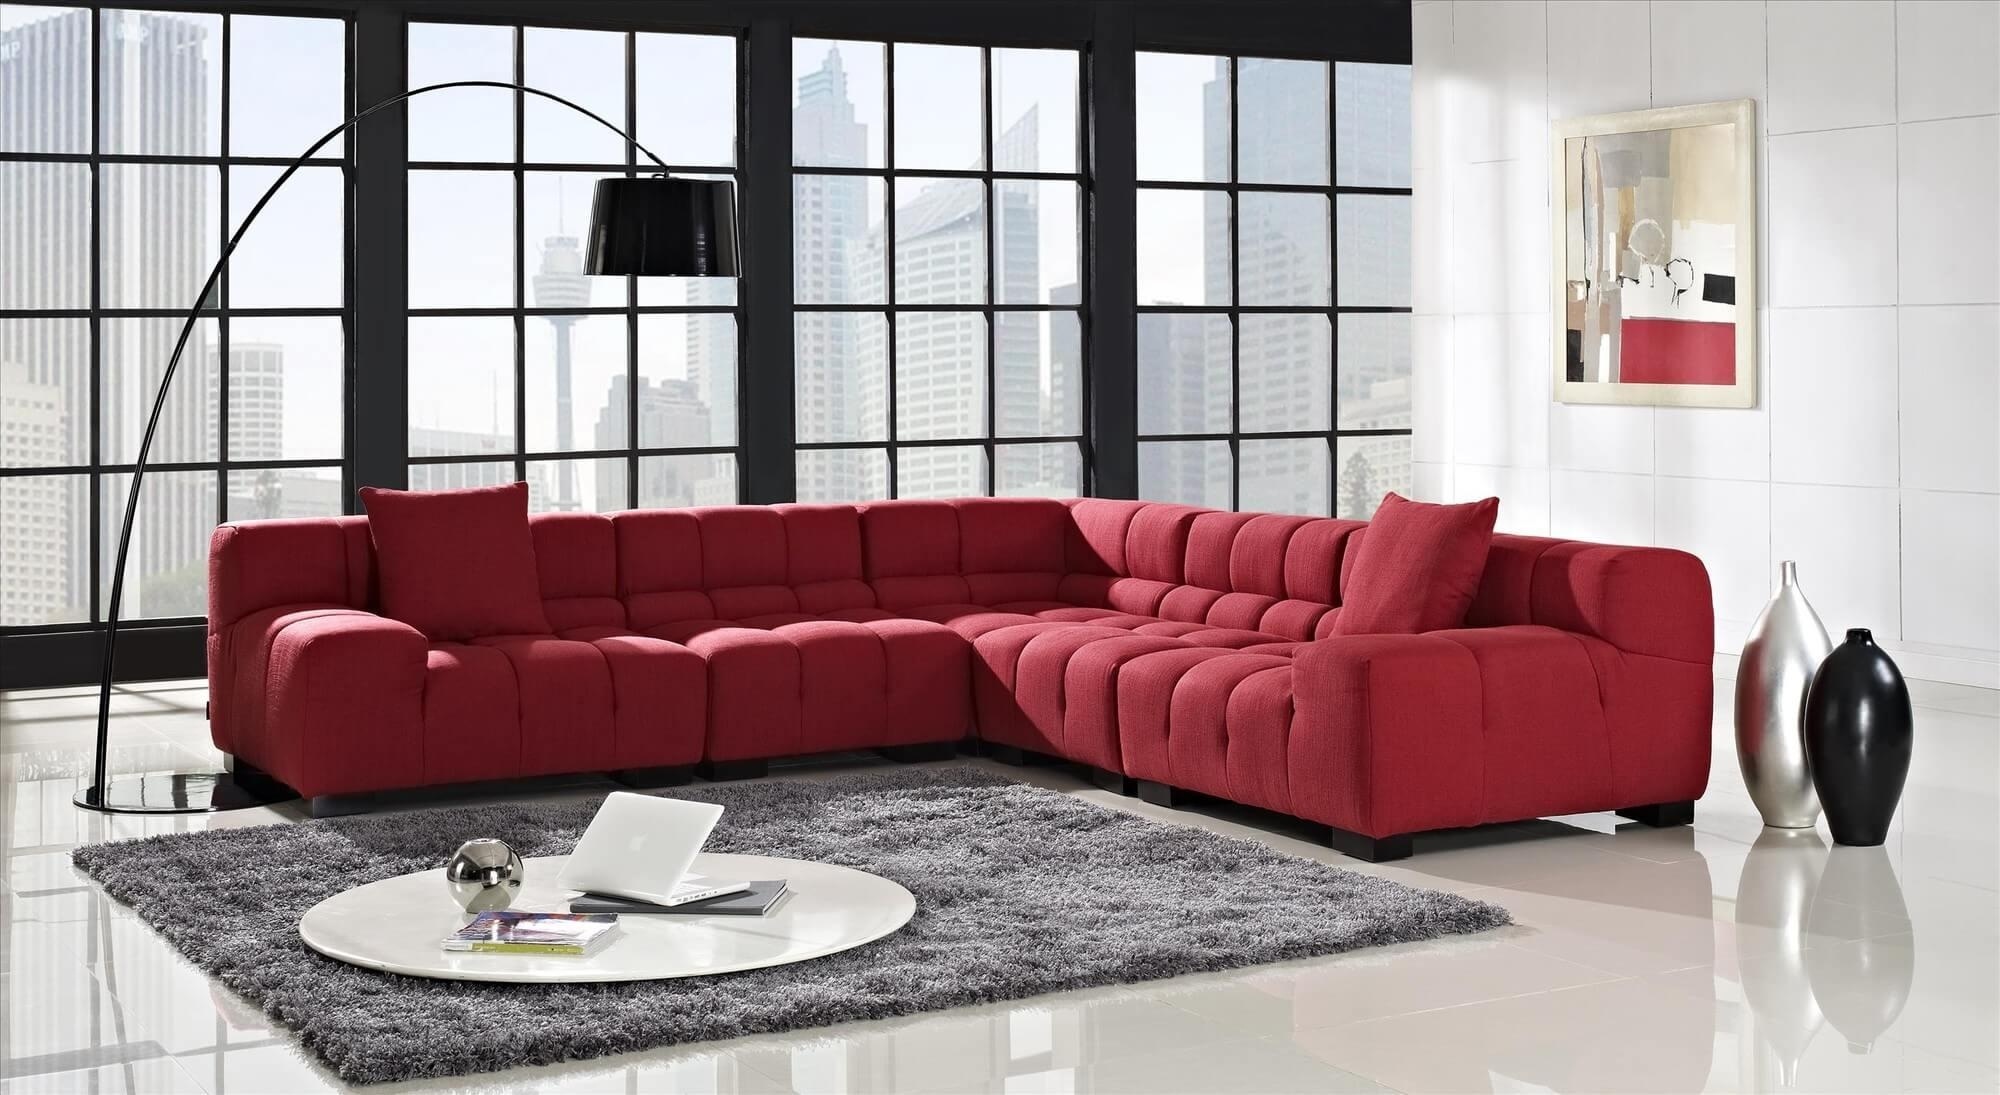 Sofas Center : Tosh Furniture Modern Black And Red Sofa Set Ikea Within Black And Red Sofa Sets (View 19 of 20)